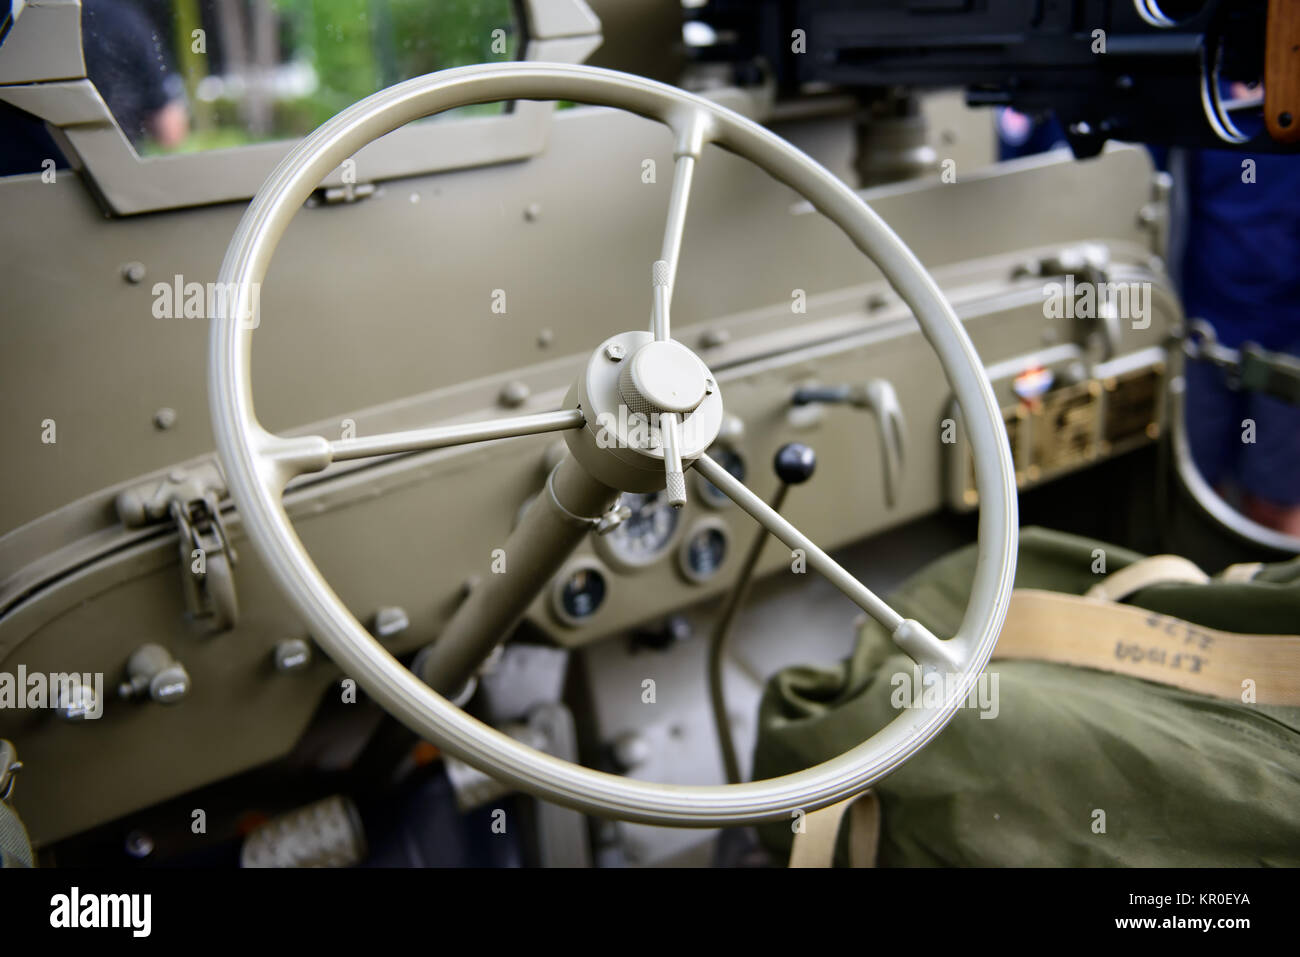 steering wheel military vehicle - Stock Image